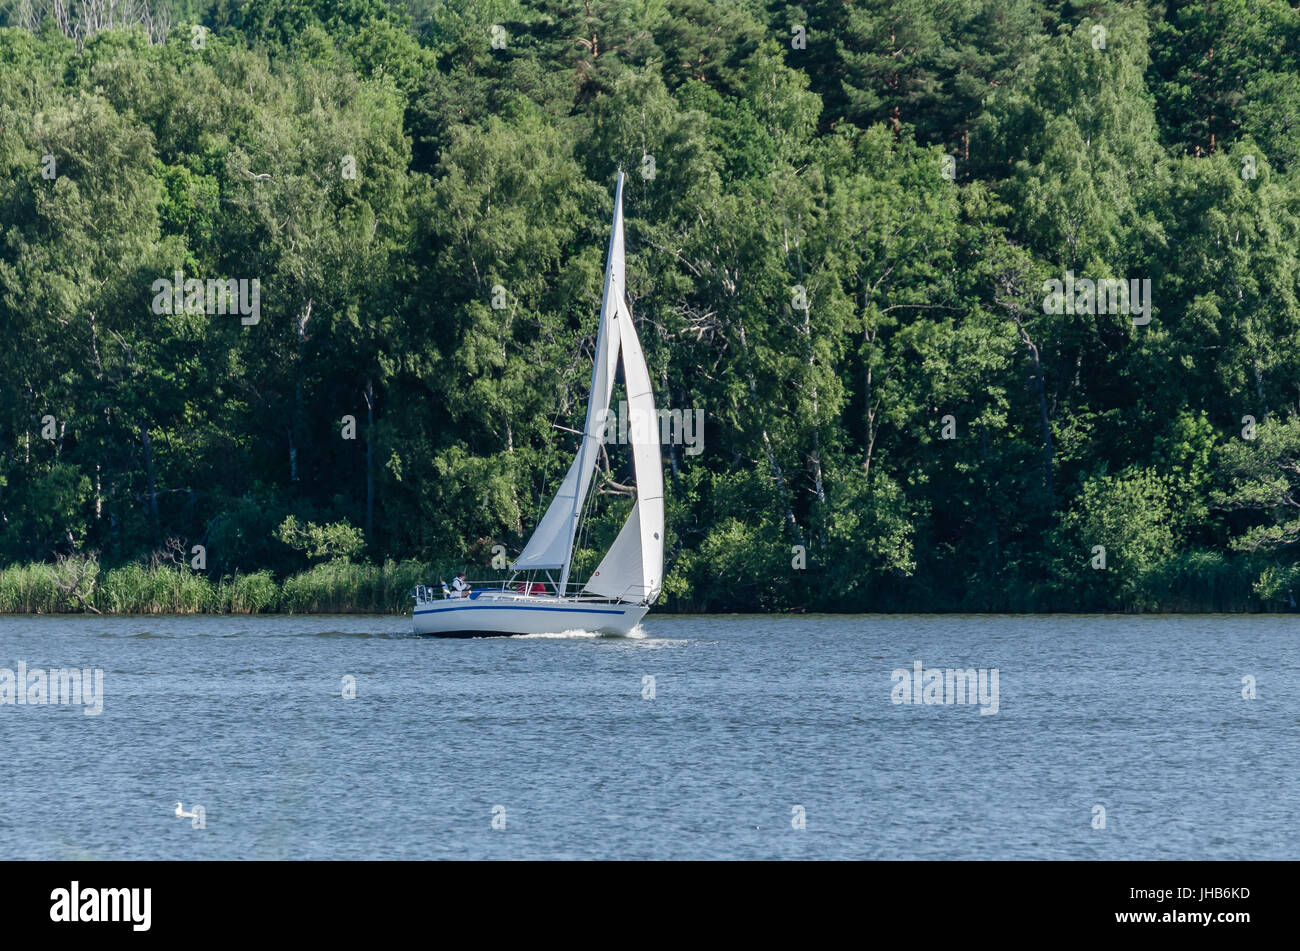 Sailing in the wind. - Stock Image